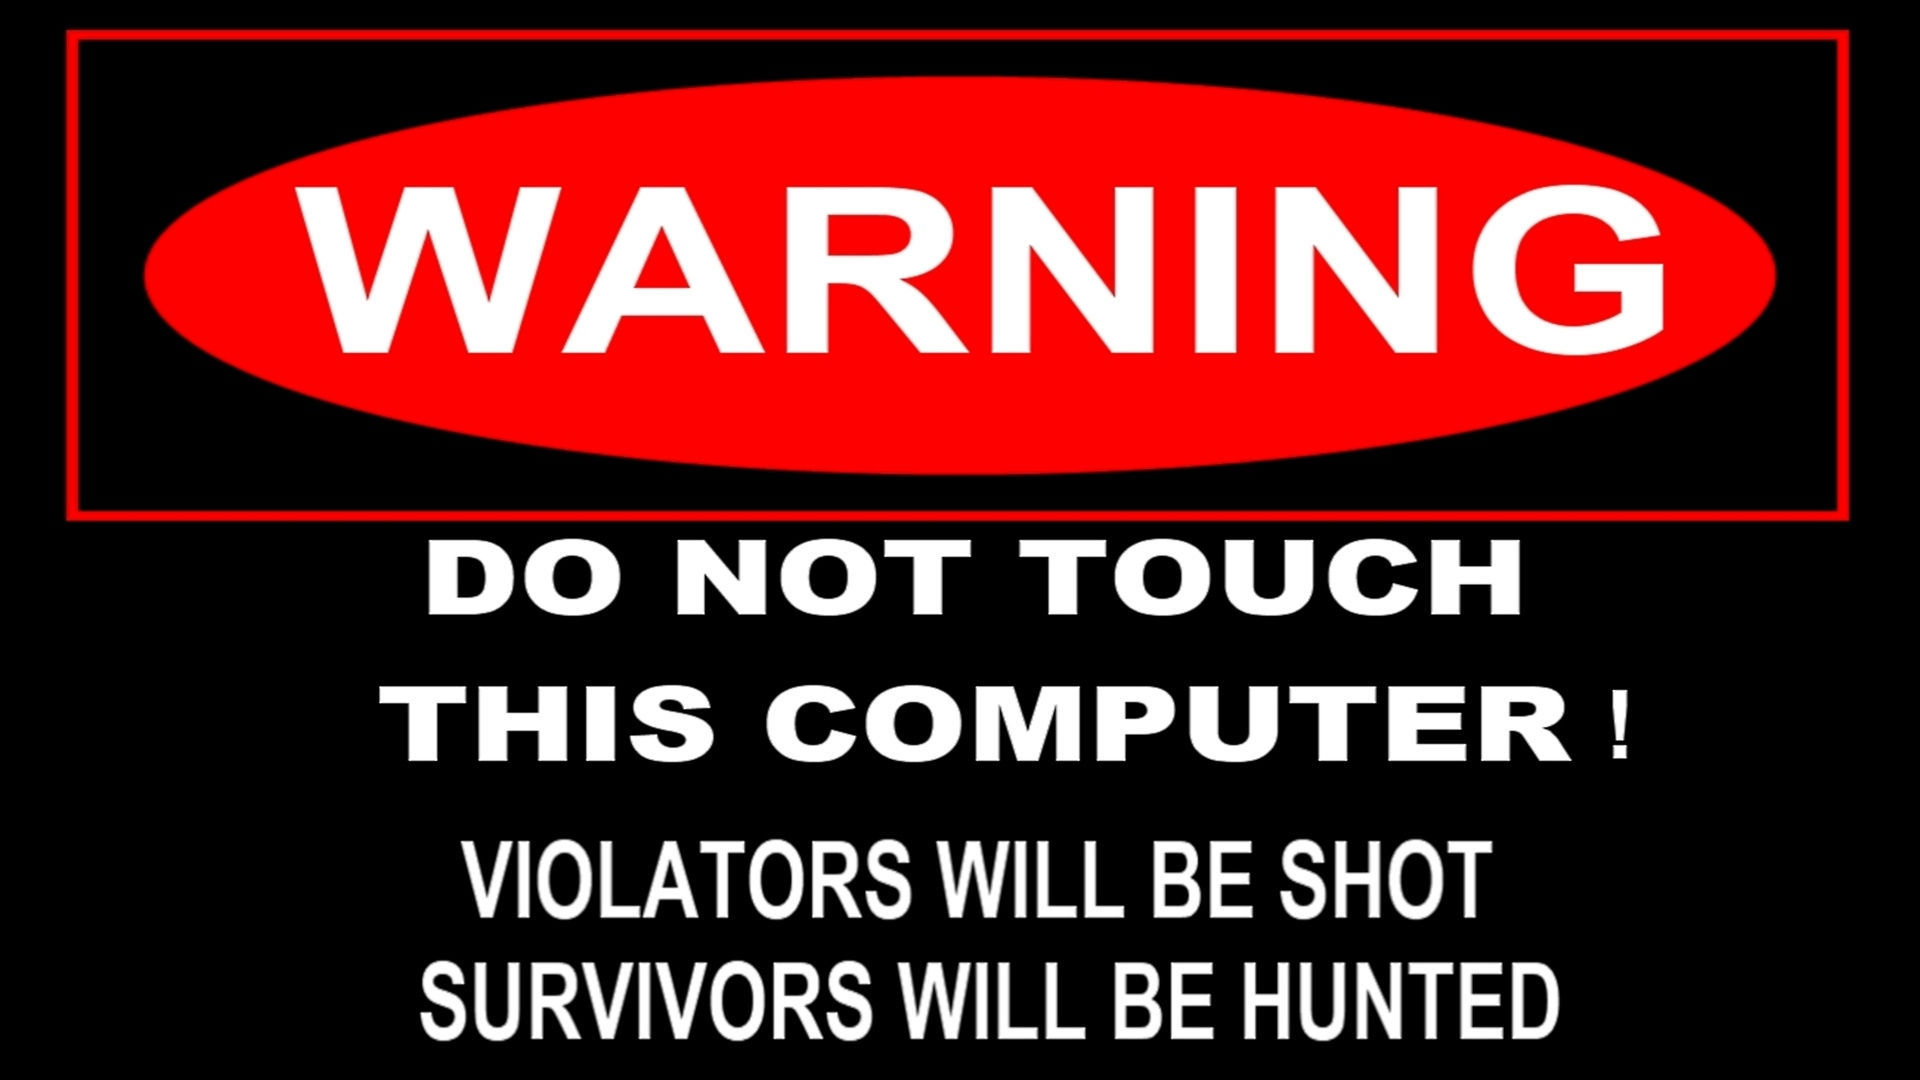 Warning sign wallpaper 5407 1920x1080